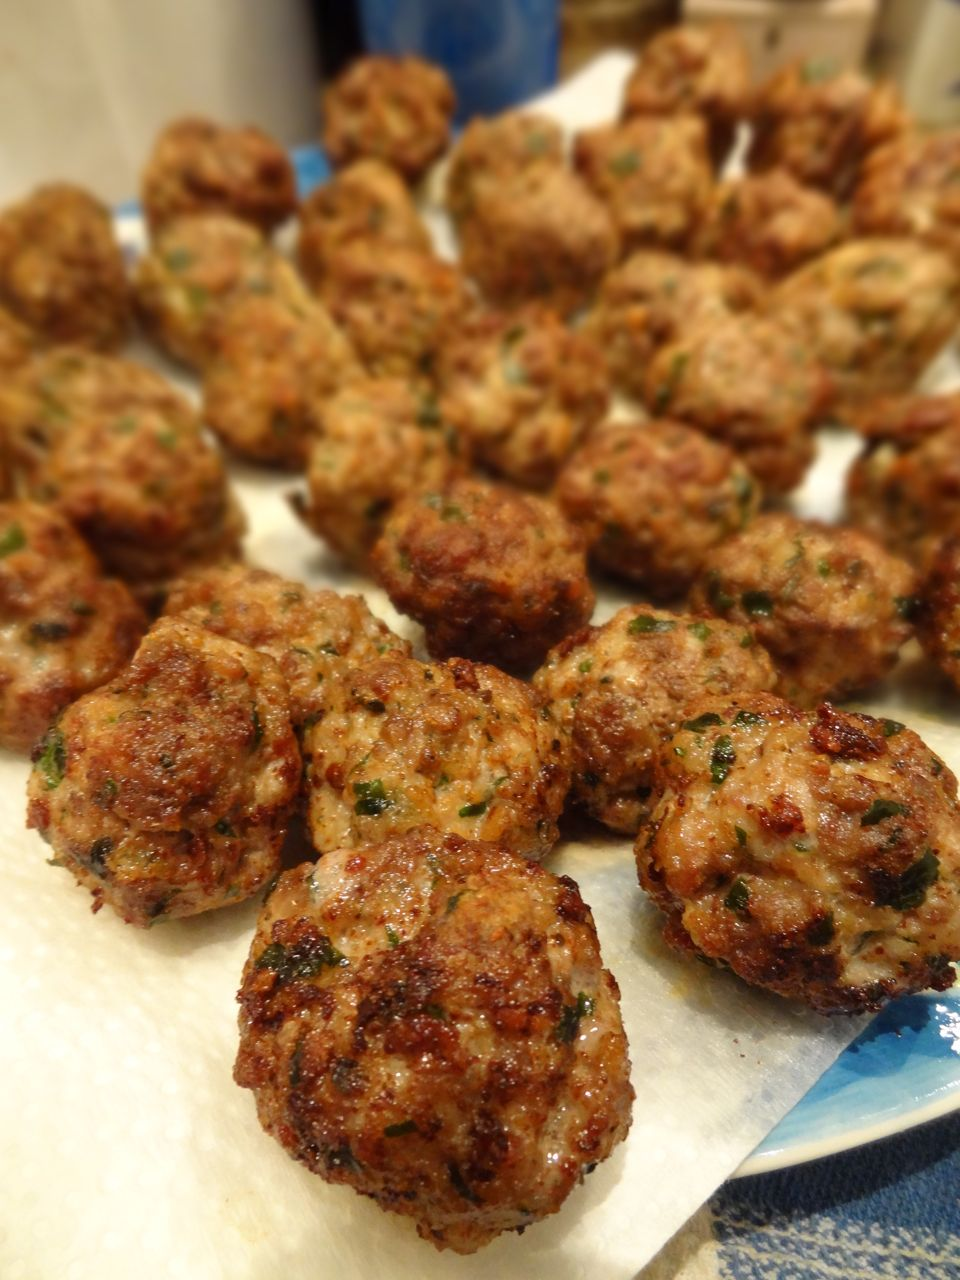 Golden brown and cooked through, the turkey meatballs smell heavenly